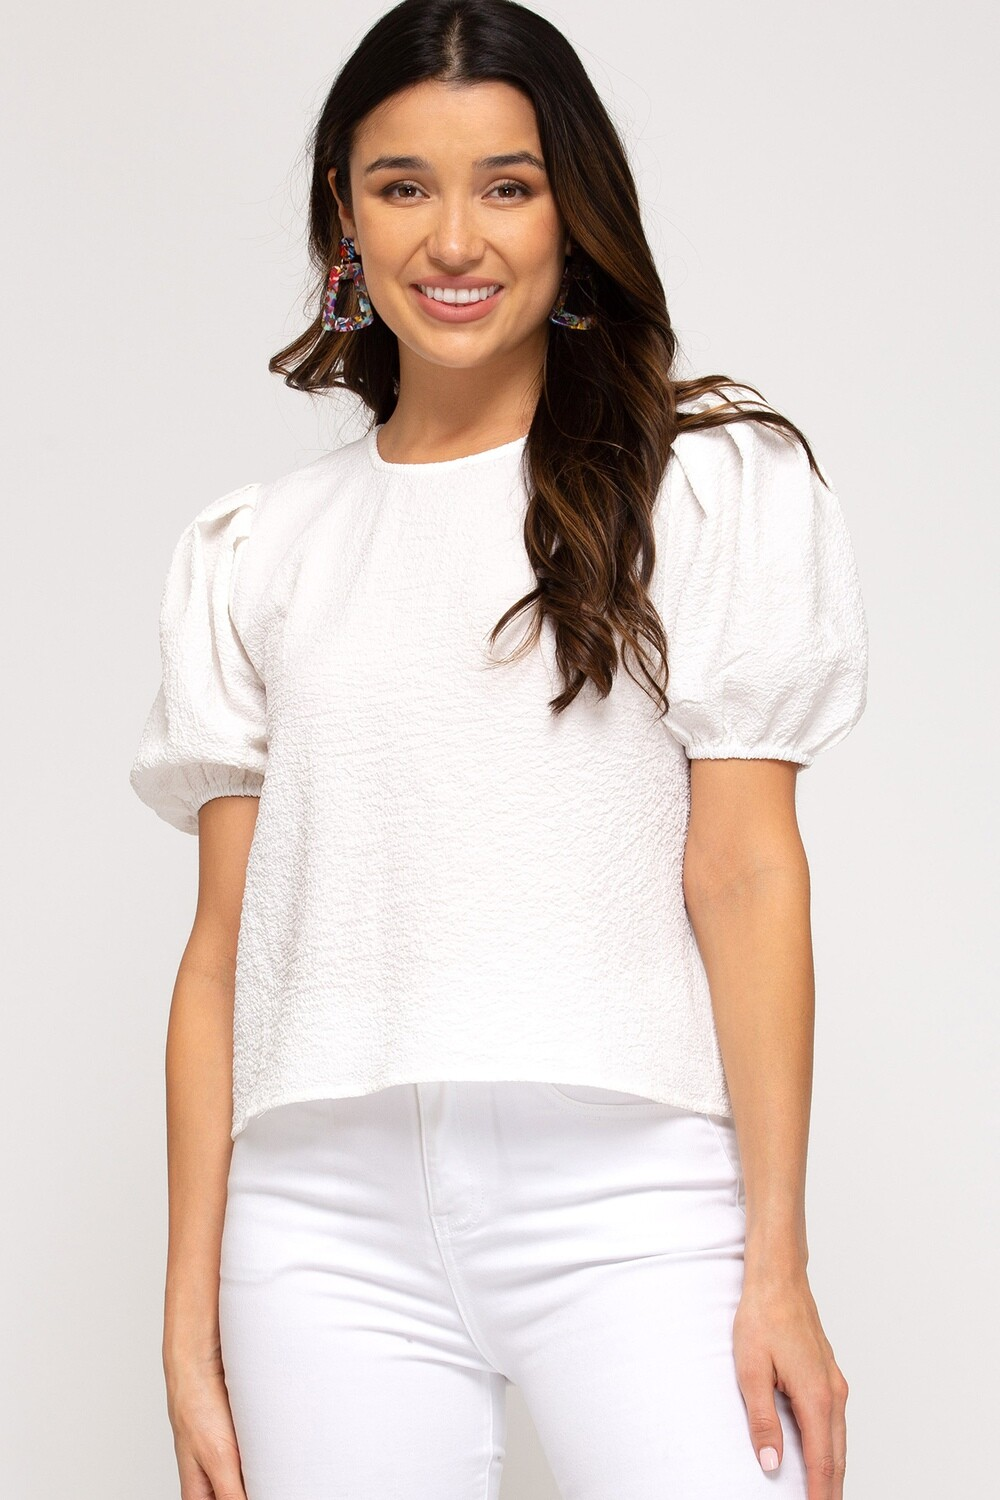 She and Sky: White Short Puff Sleeve